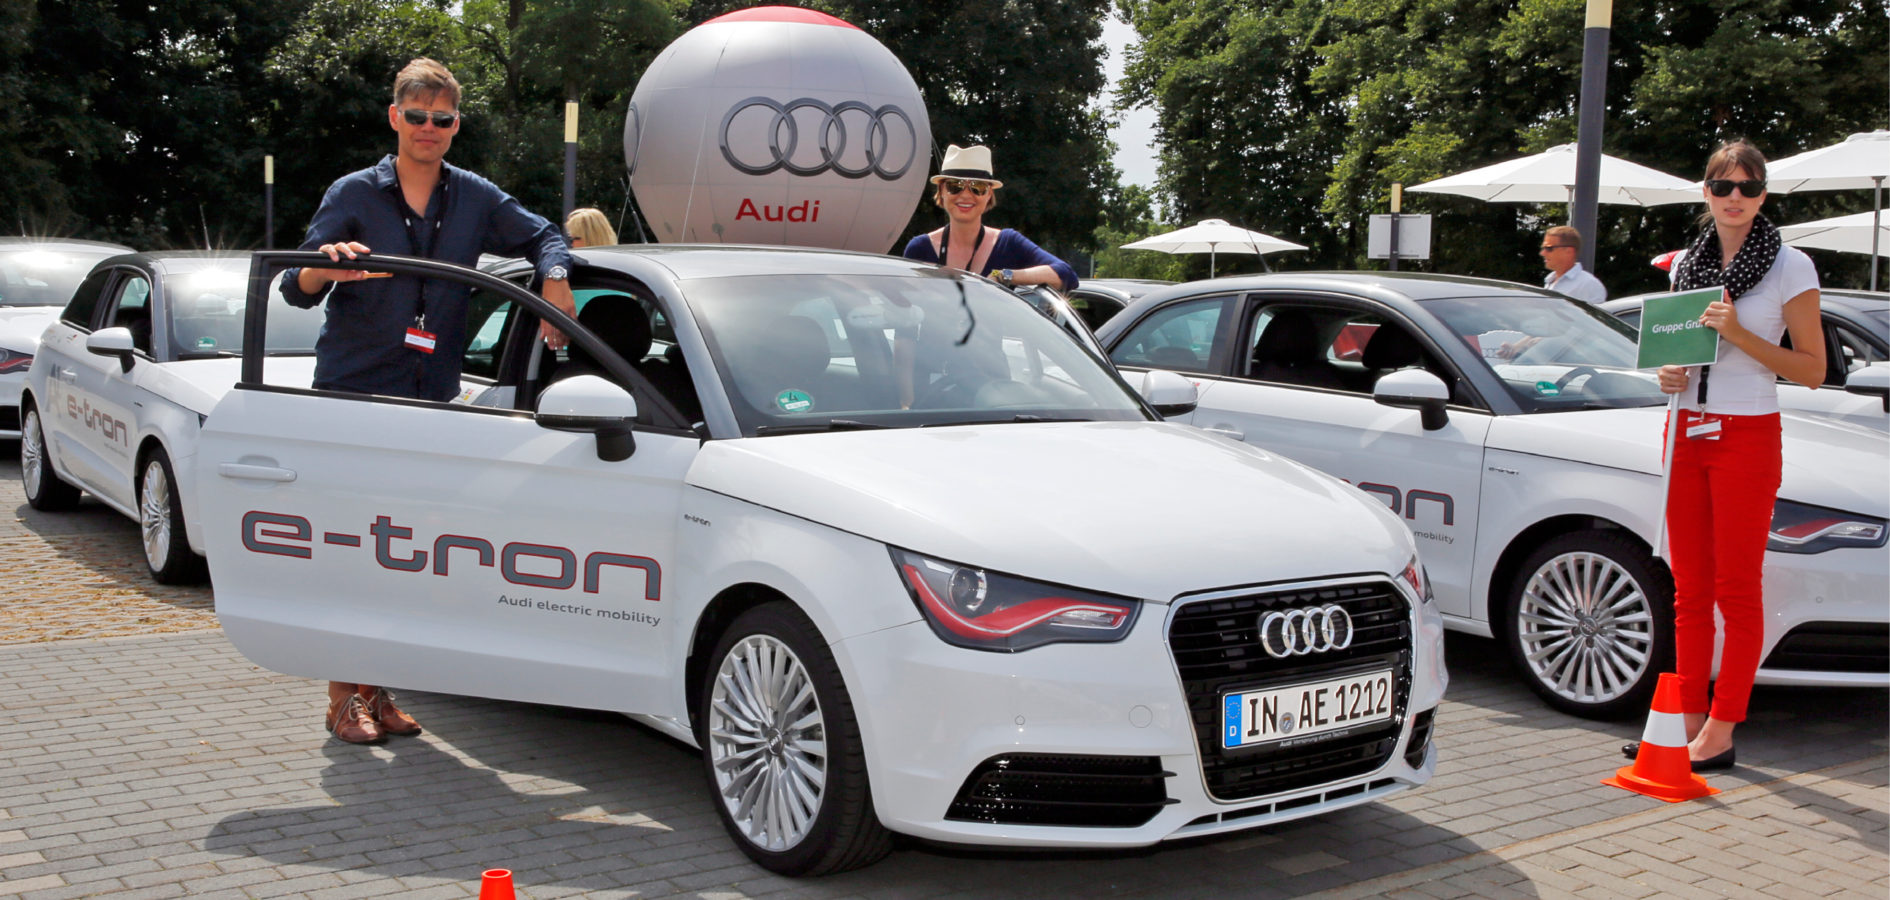 AUDI Schaufensterprojekt e-tron